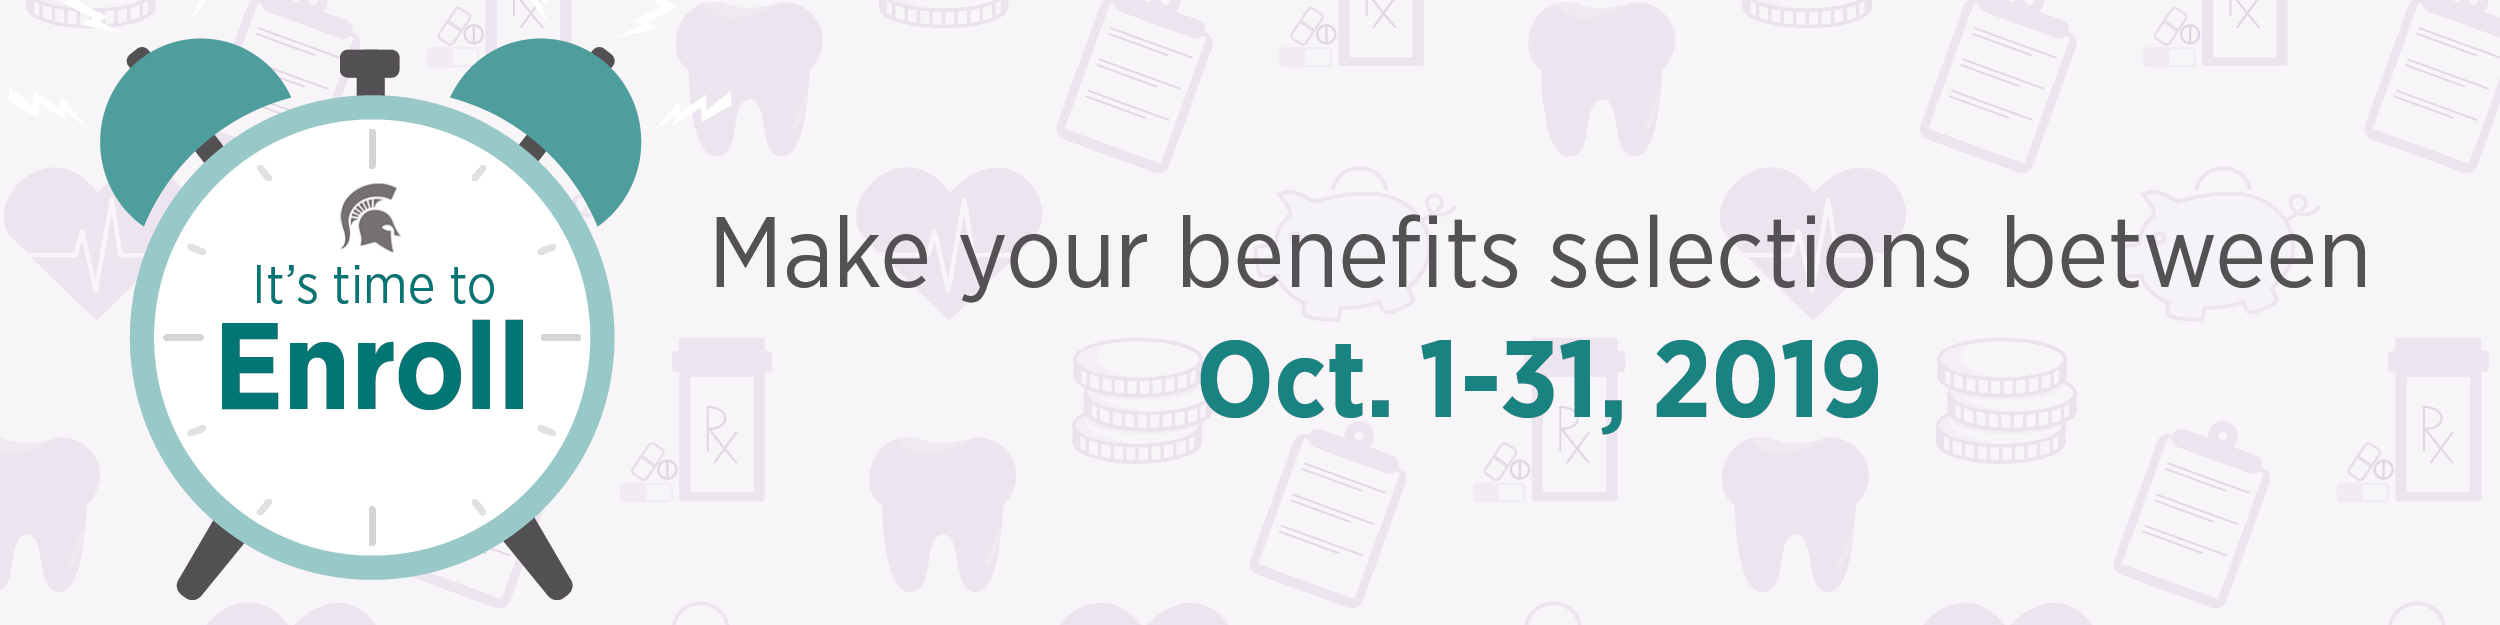 graphic with the text: Make your benefits selections between October 1-31, 2019